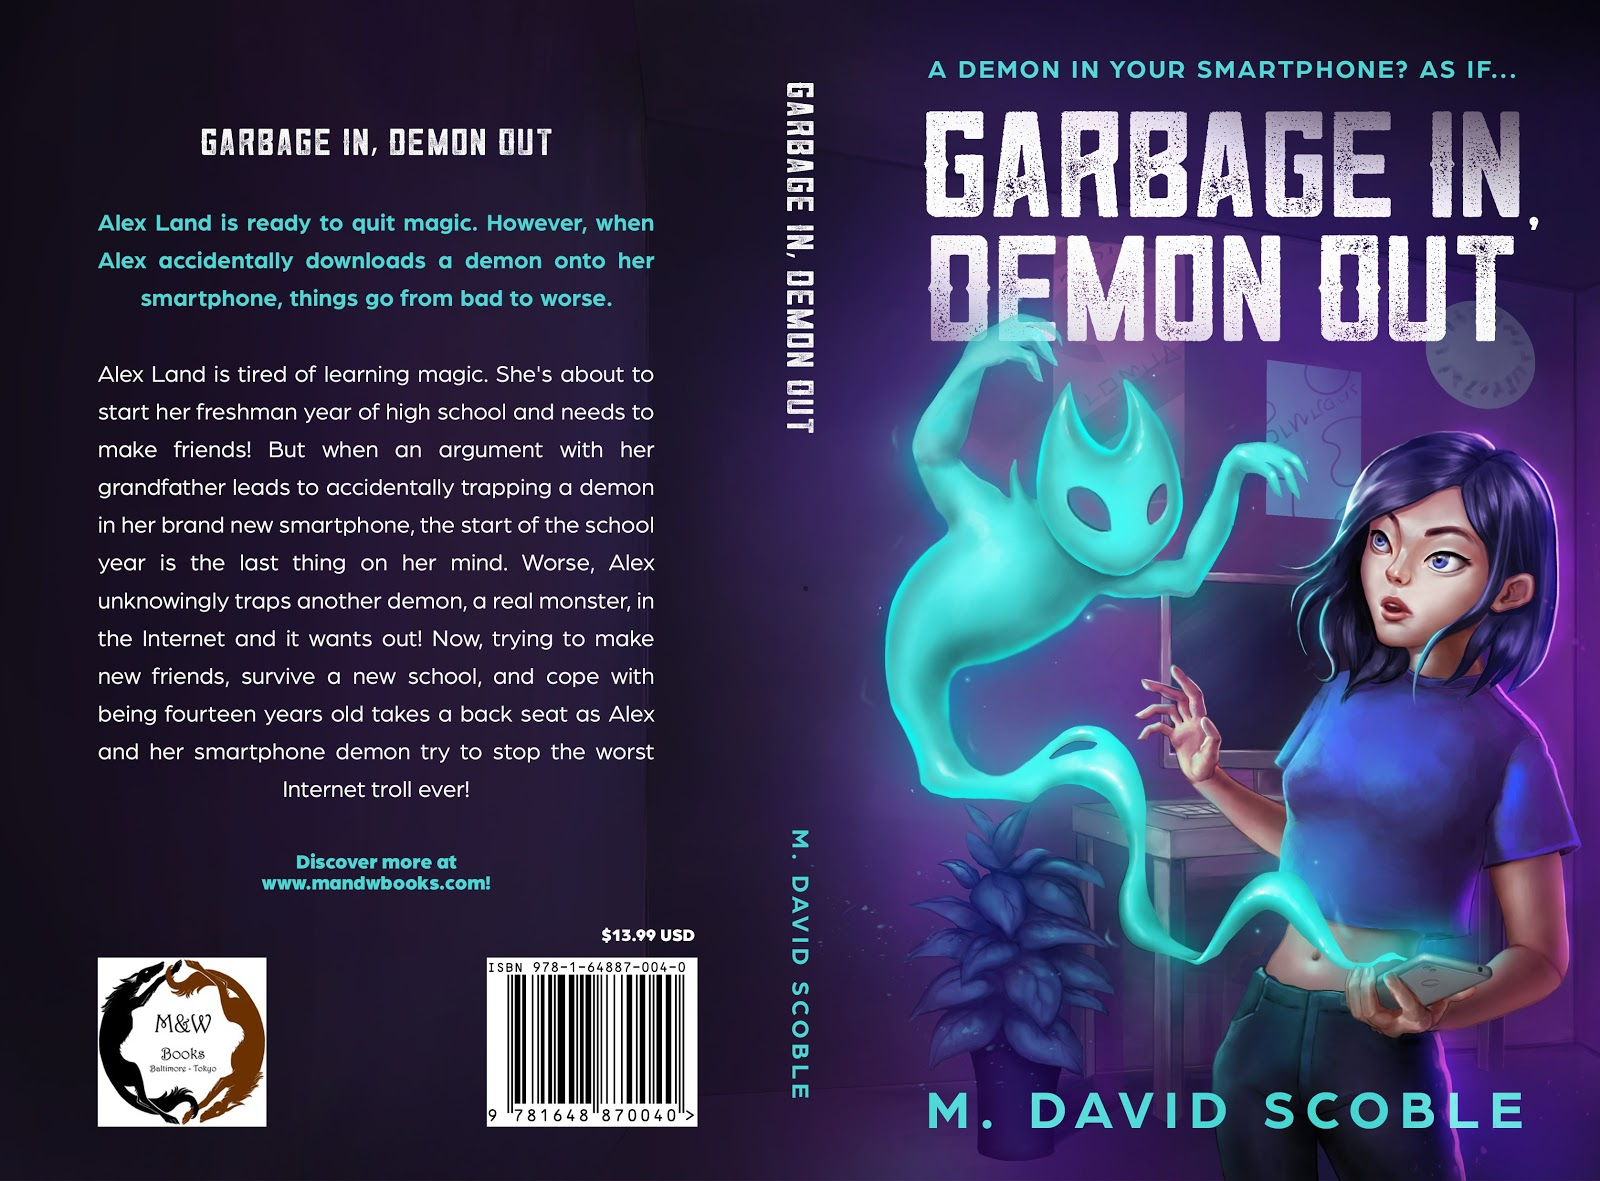 Garbage in Demon out by M. David Scobleas an example of children's book cover design fro kids over 12